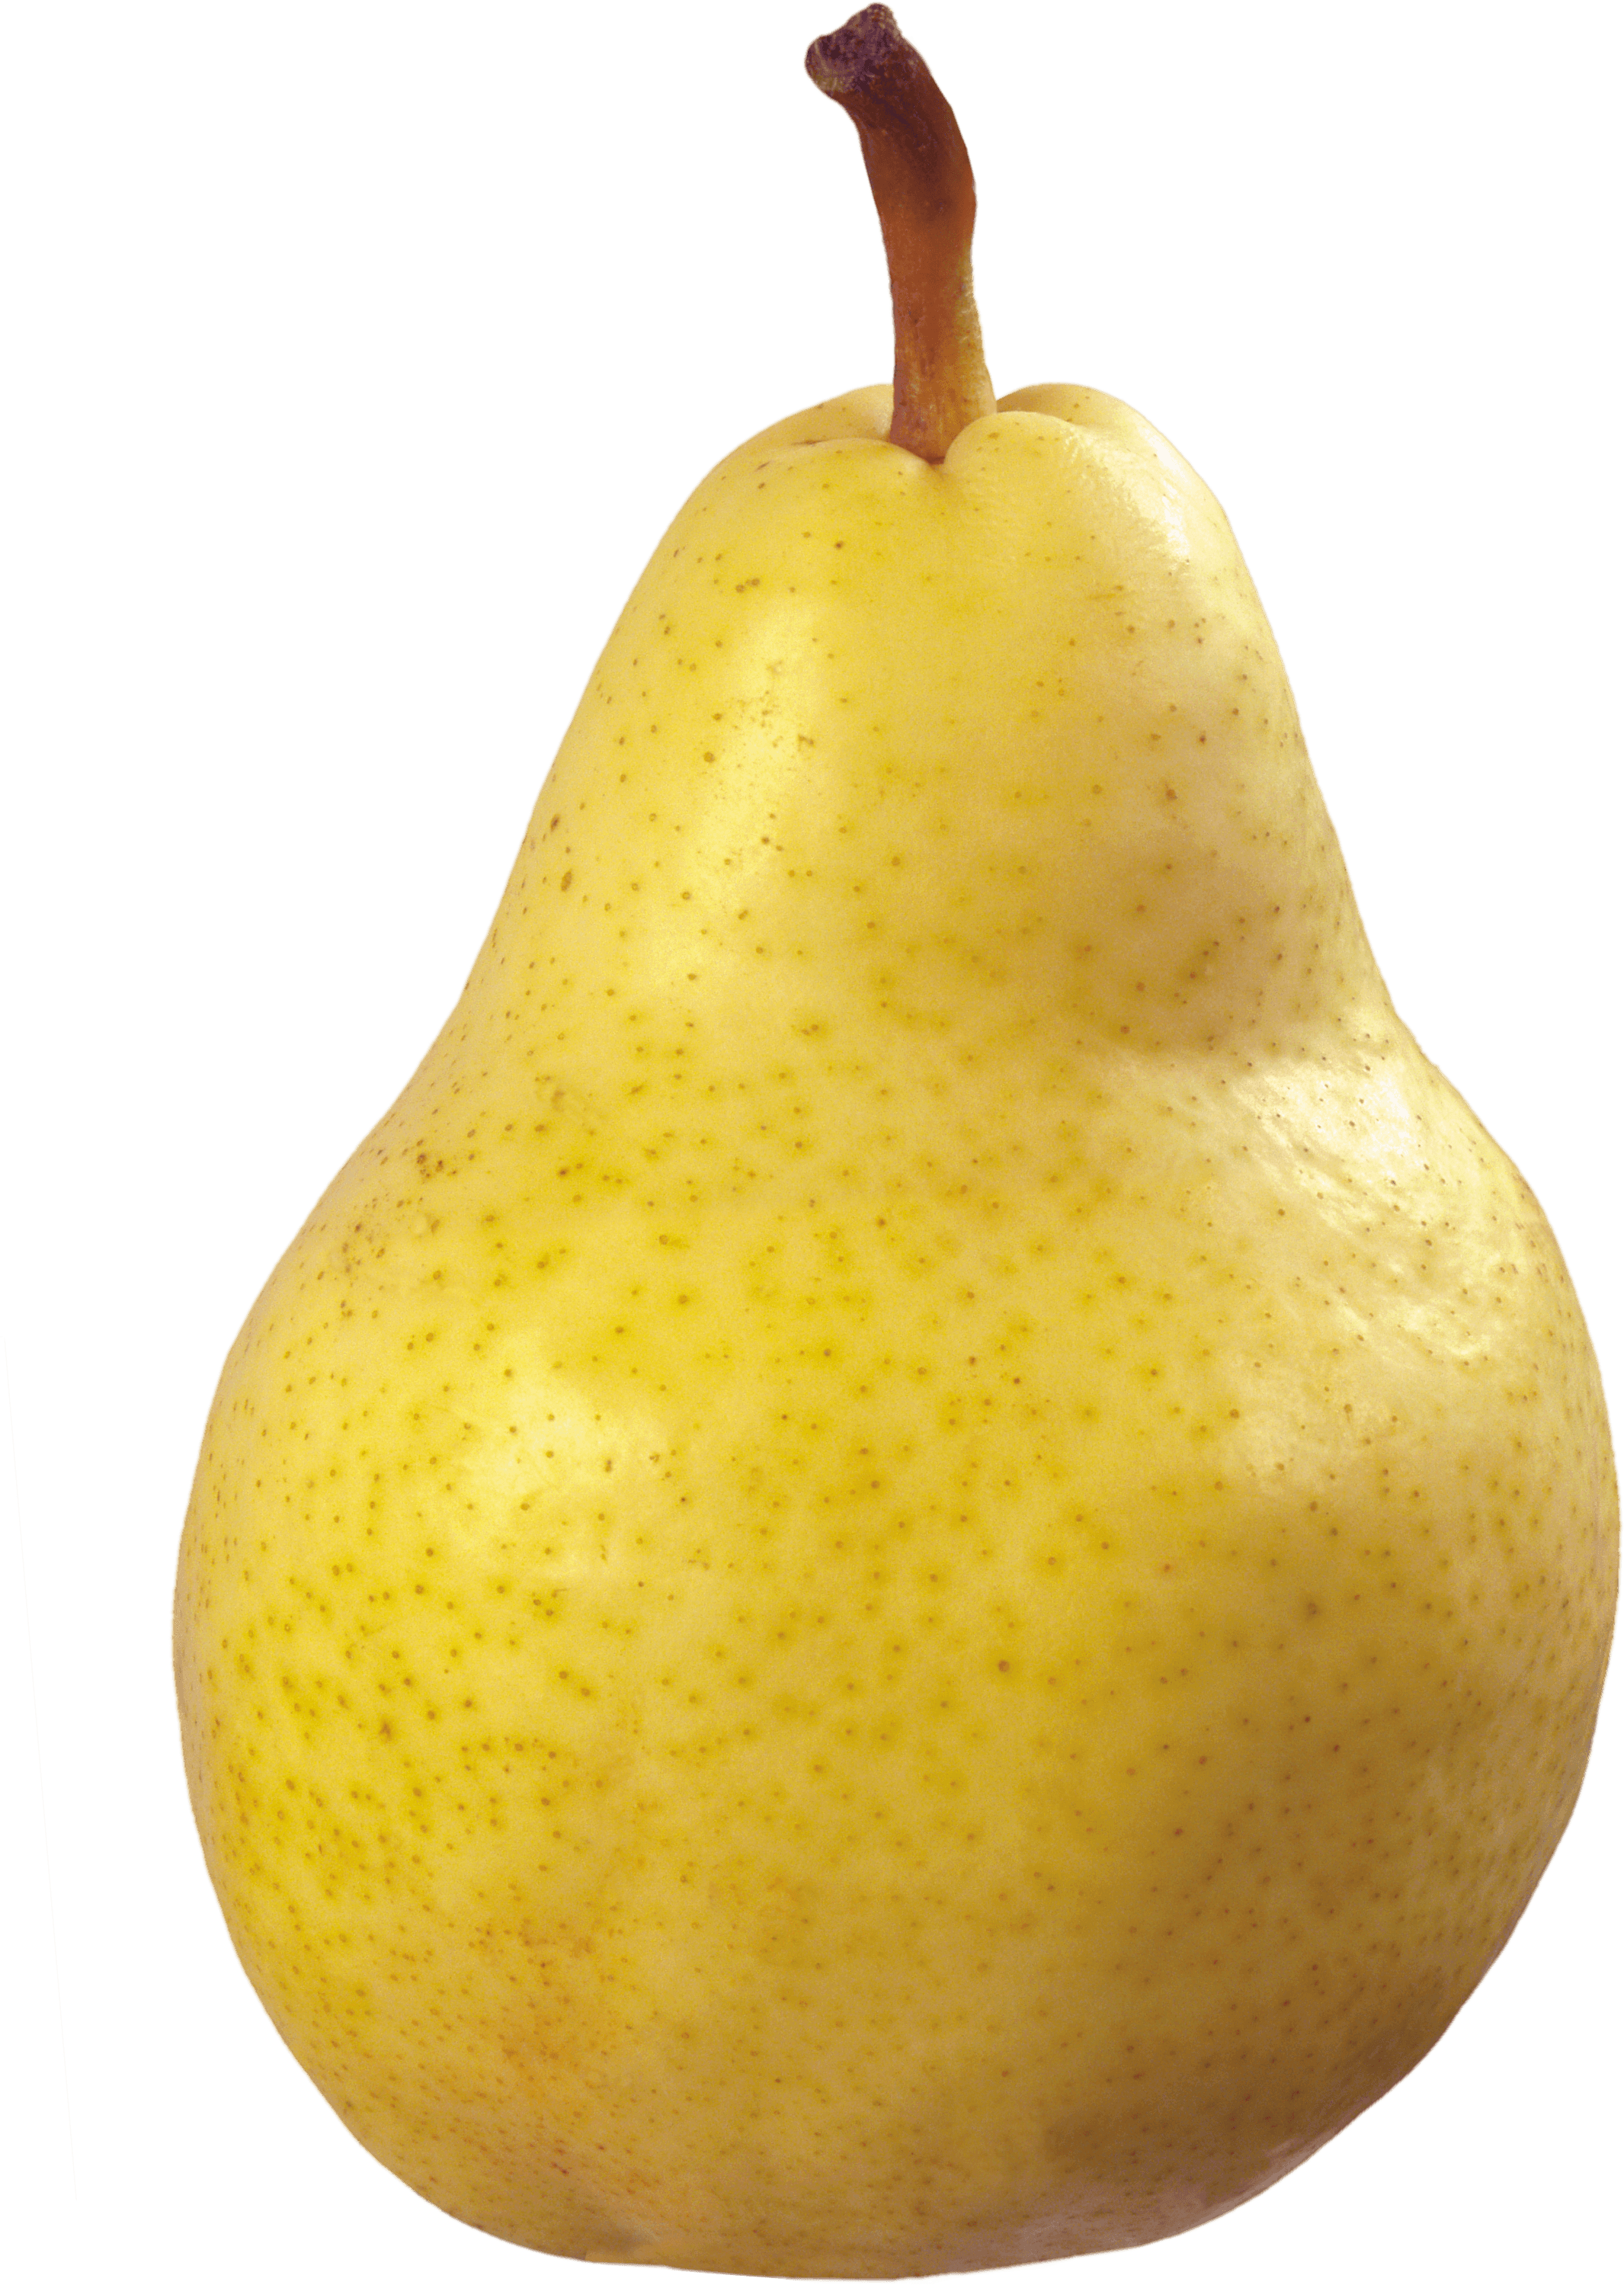 Yellow Pear Png Image PNG Image